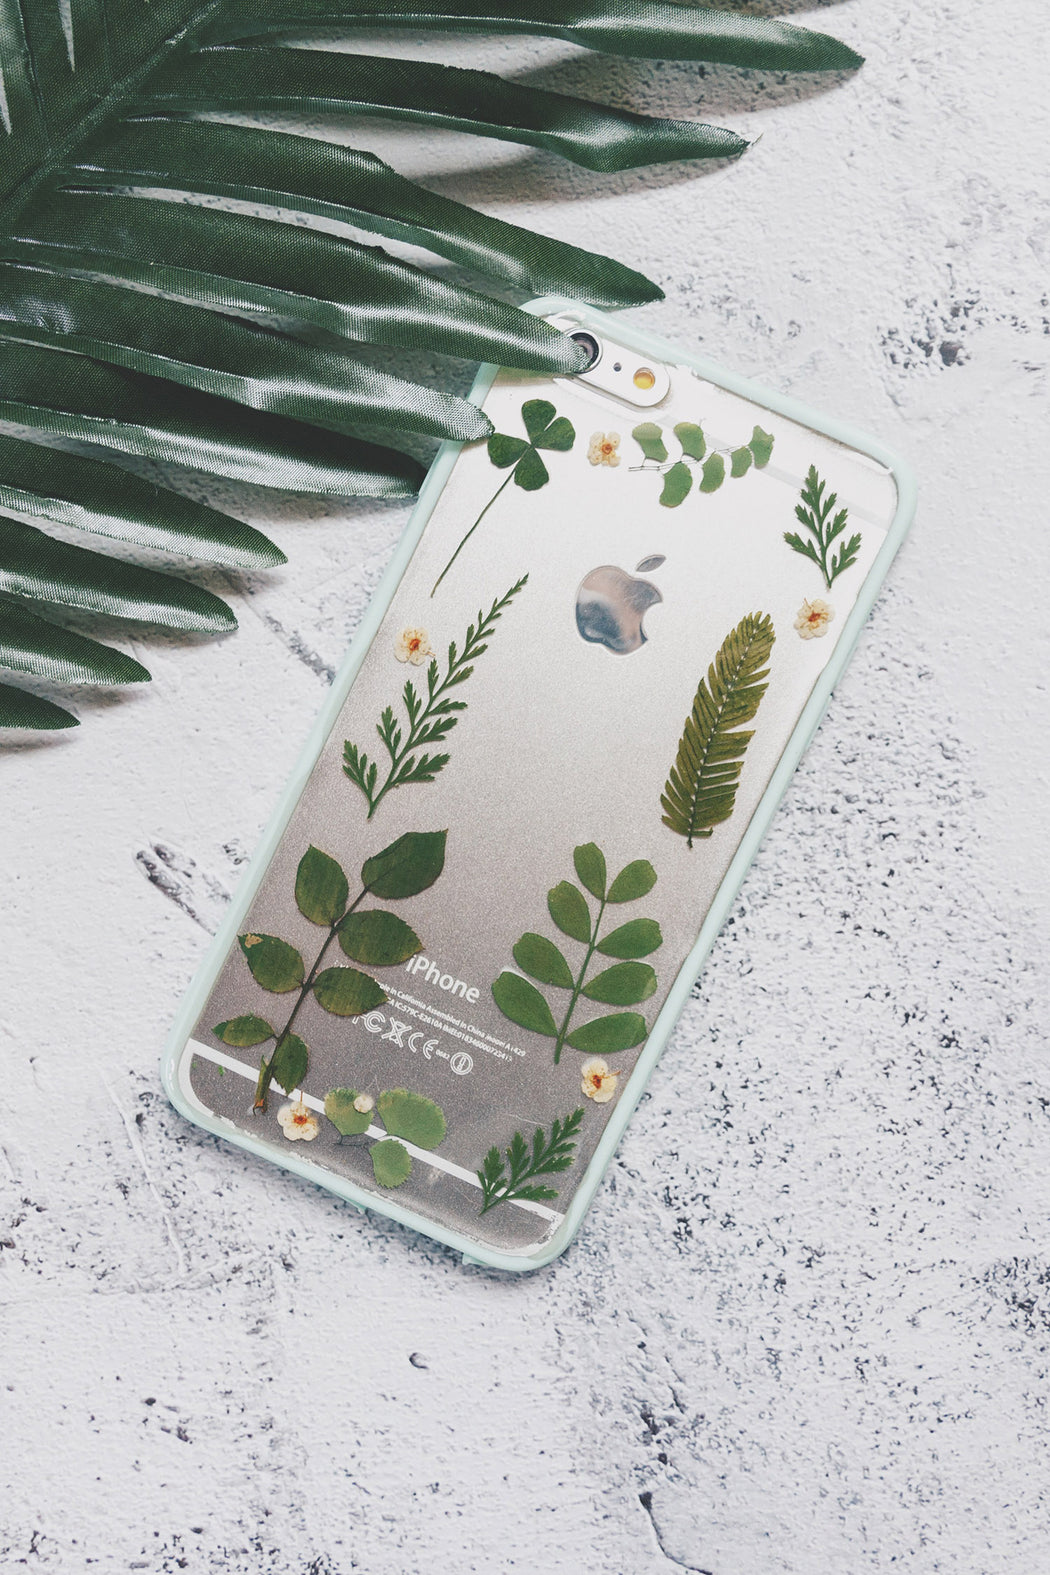 pressed flower green fern leaf cute protective floral iphone 6 6s plus bumper case forest mix floral neverland floraly